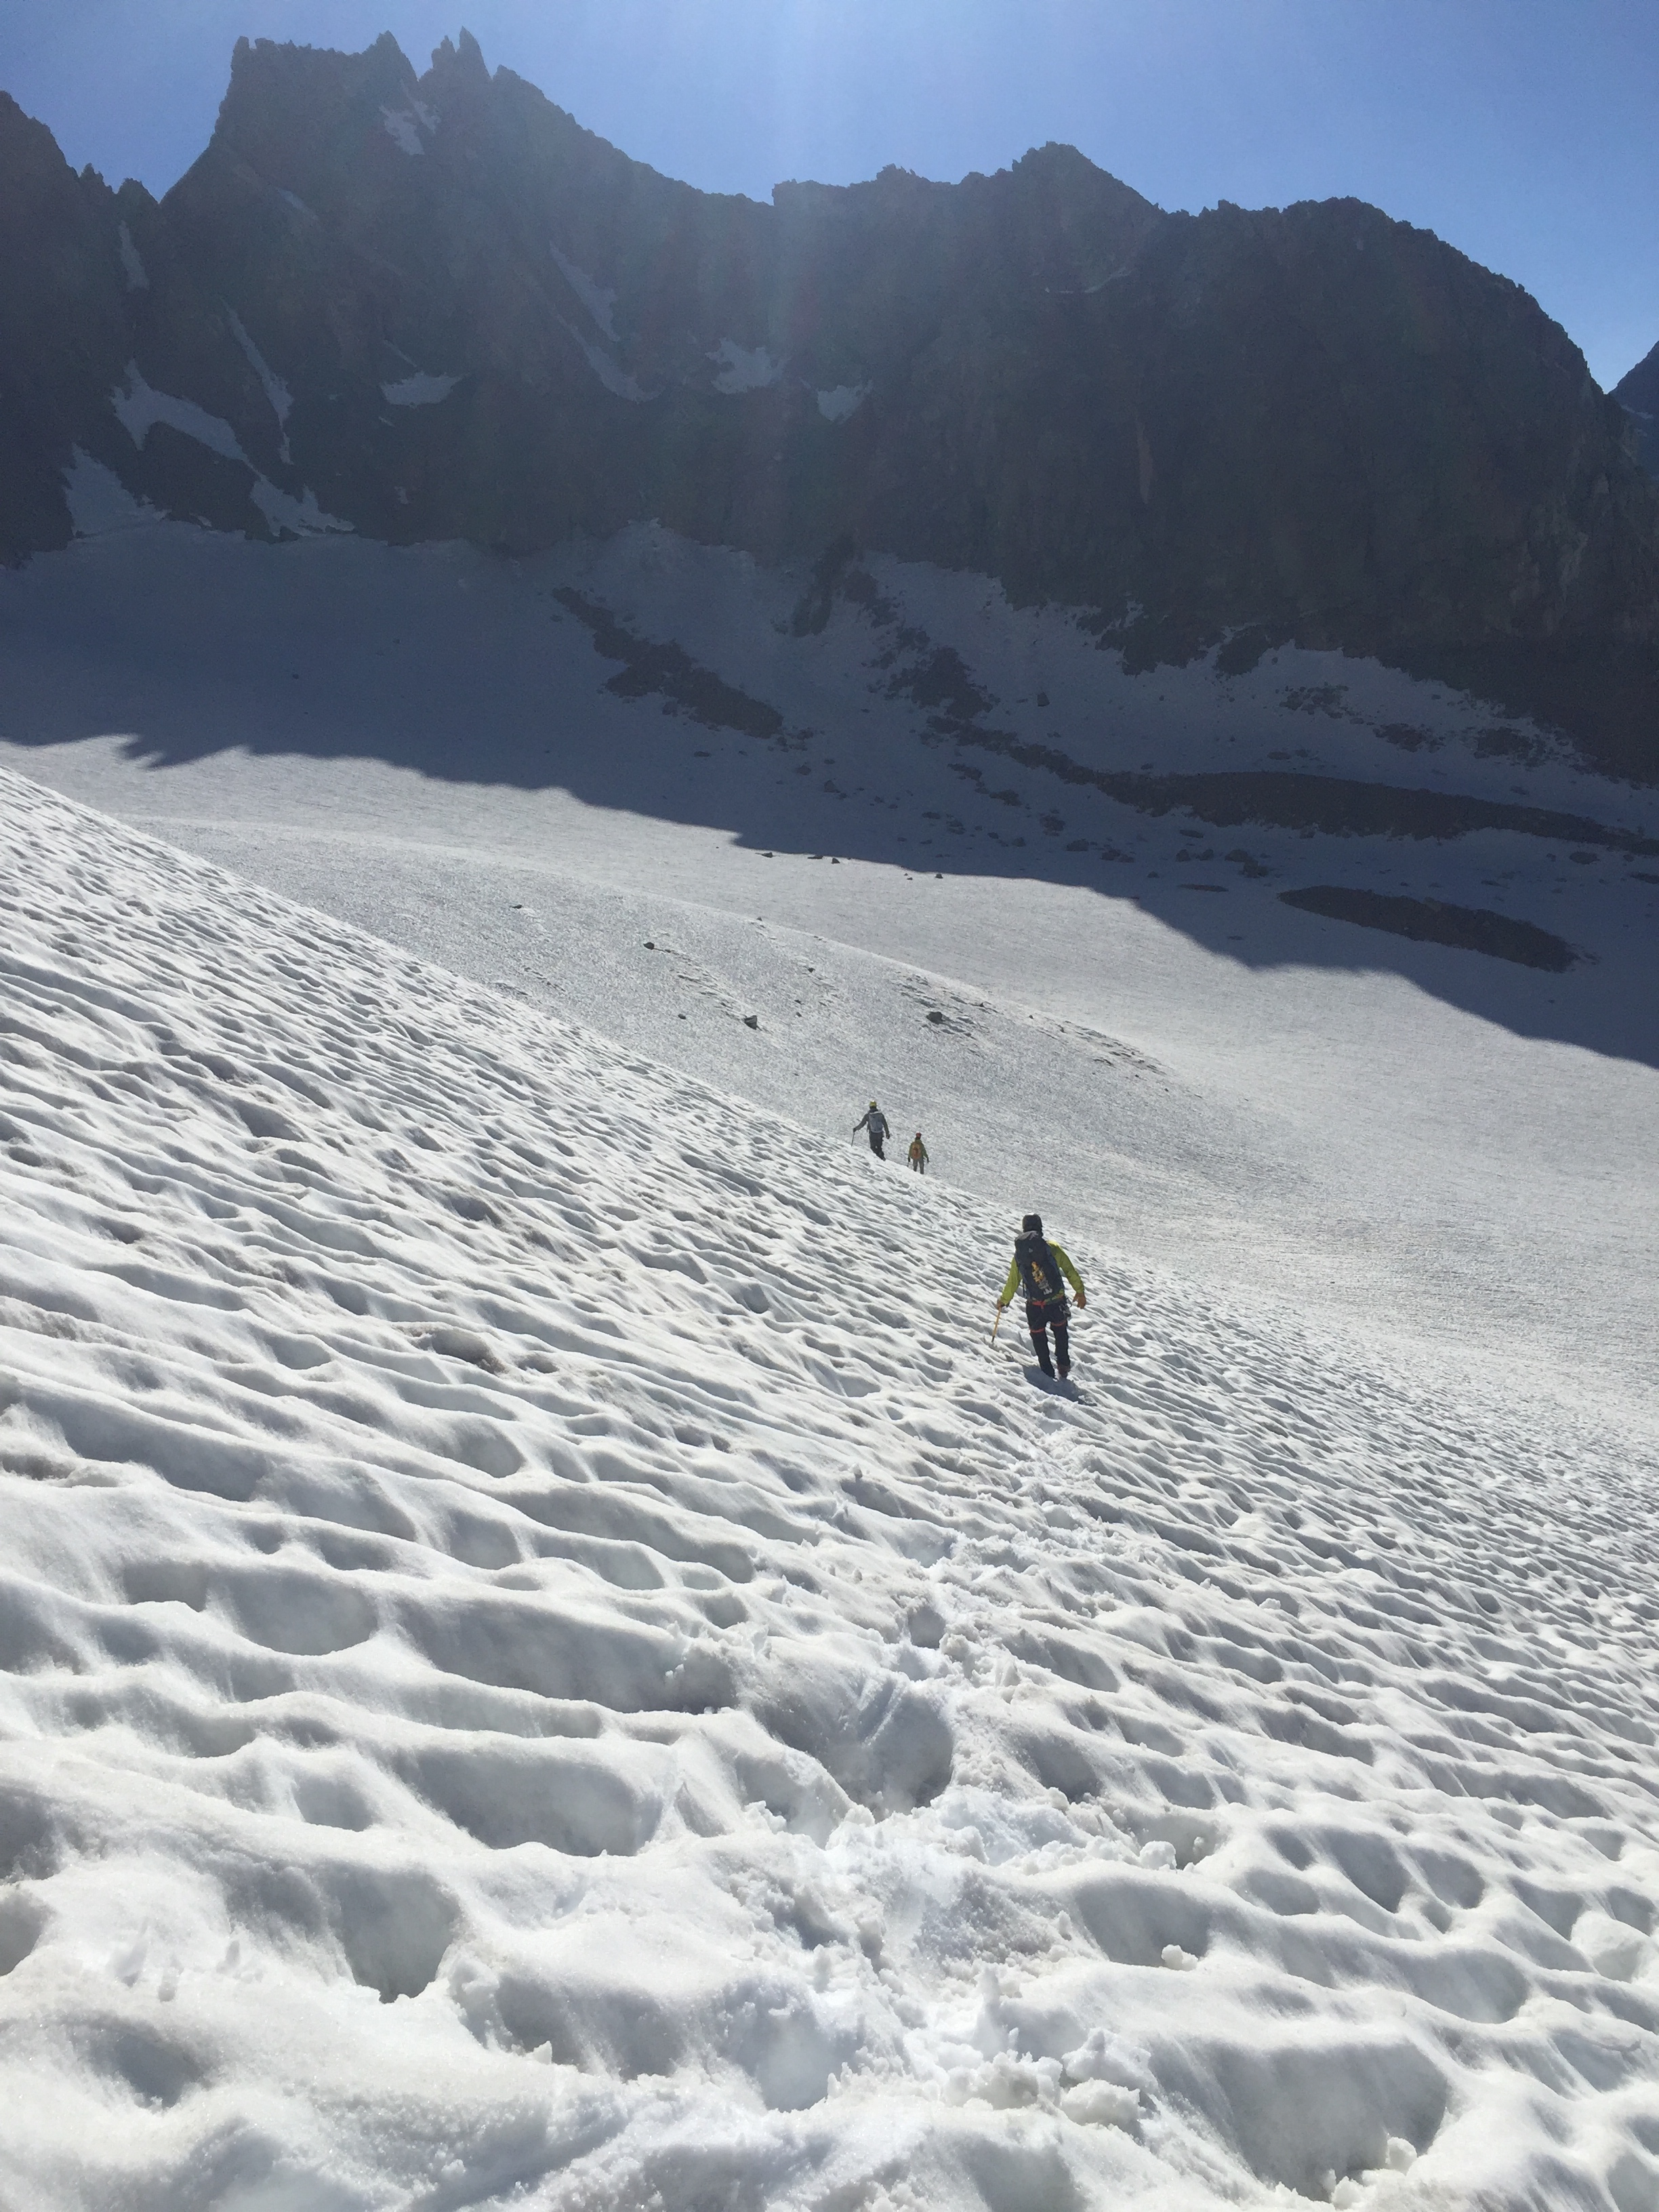 Descending the south icefield, with some of the peaks that form the Palisade Traverse in the background